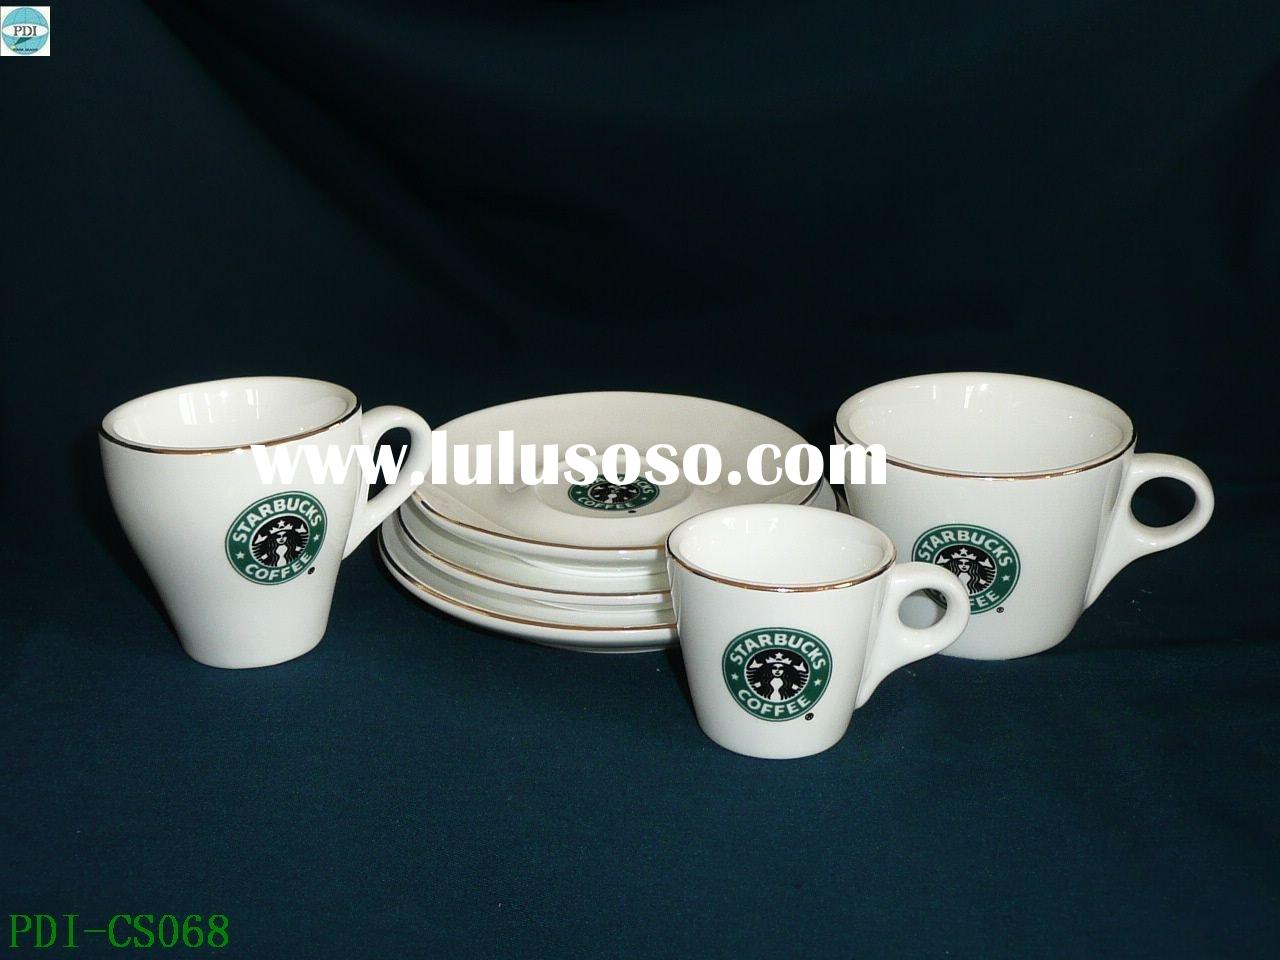 Super white porcelain coffee cup